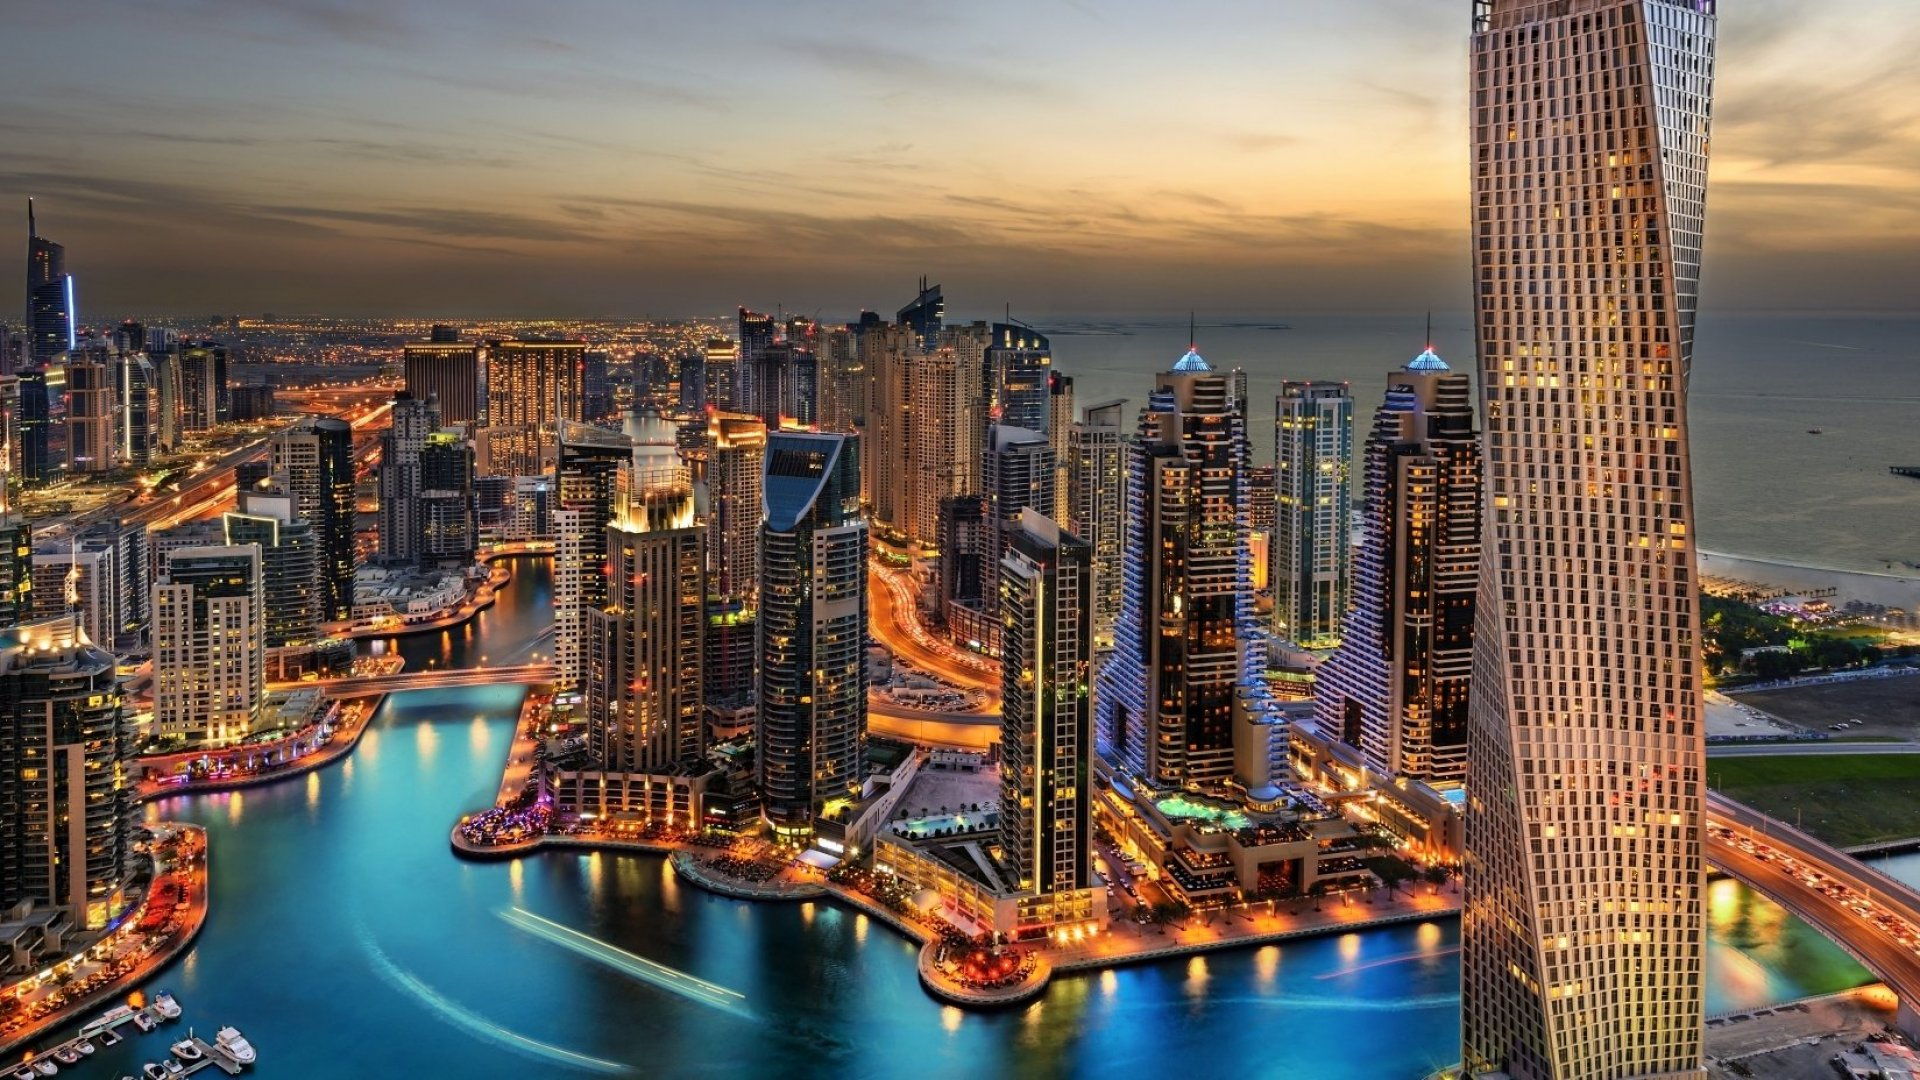 3 Innovation Lessons from Dubai